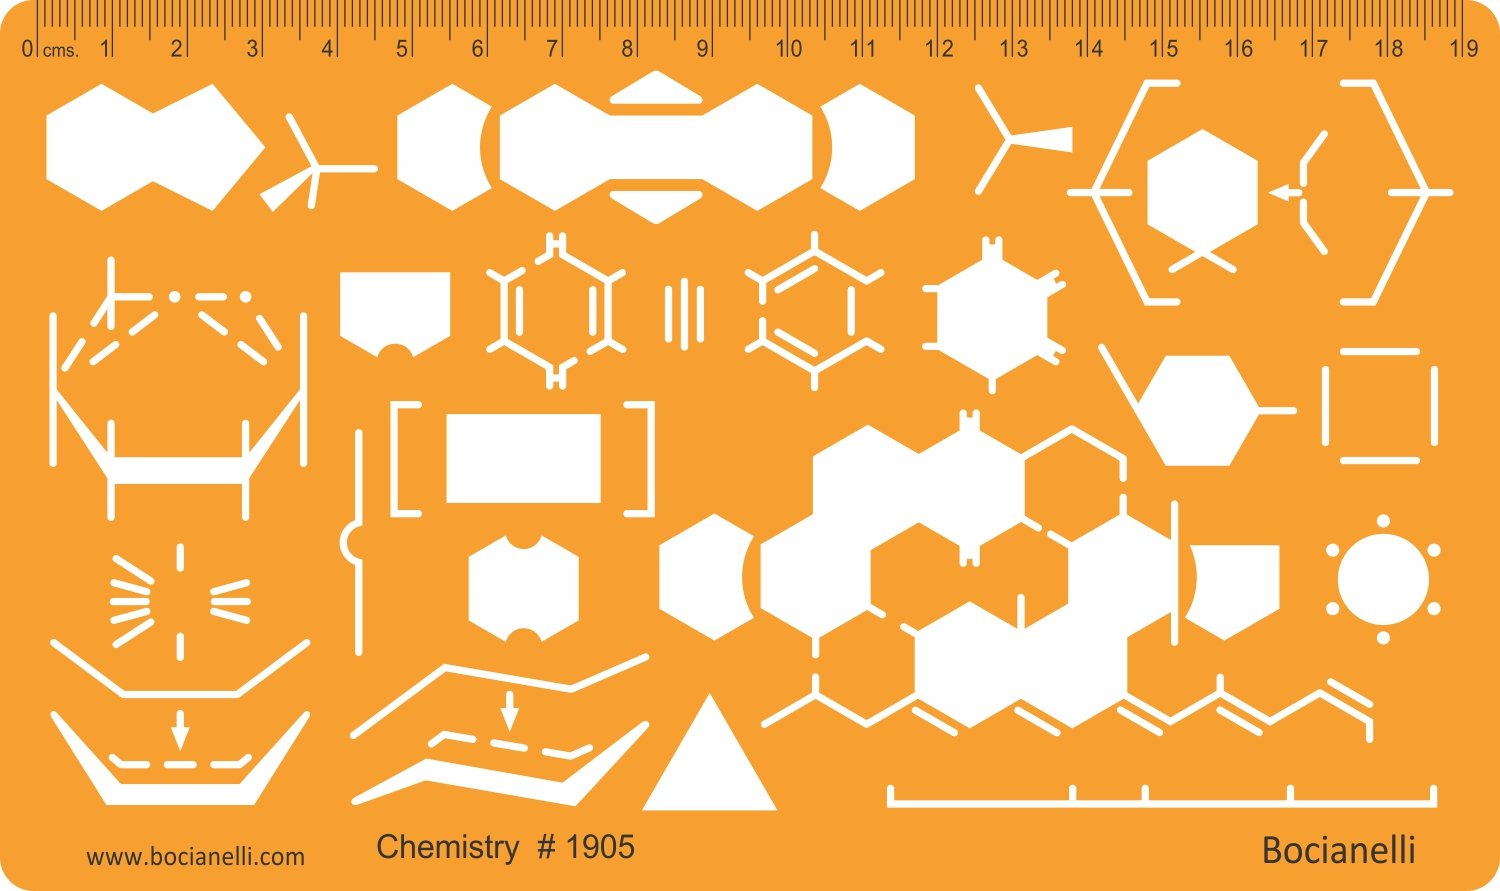 Chemistry chemical engineering science laboratory lab equipment chemistry chemical engineering science laboratory lab equipment symbols drawing template stencil amazon office products buycottarizona